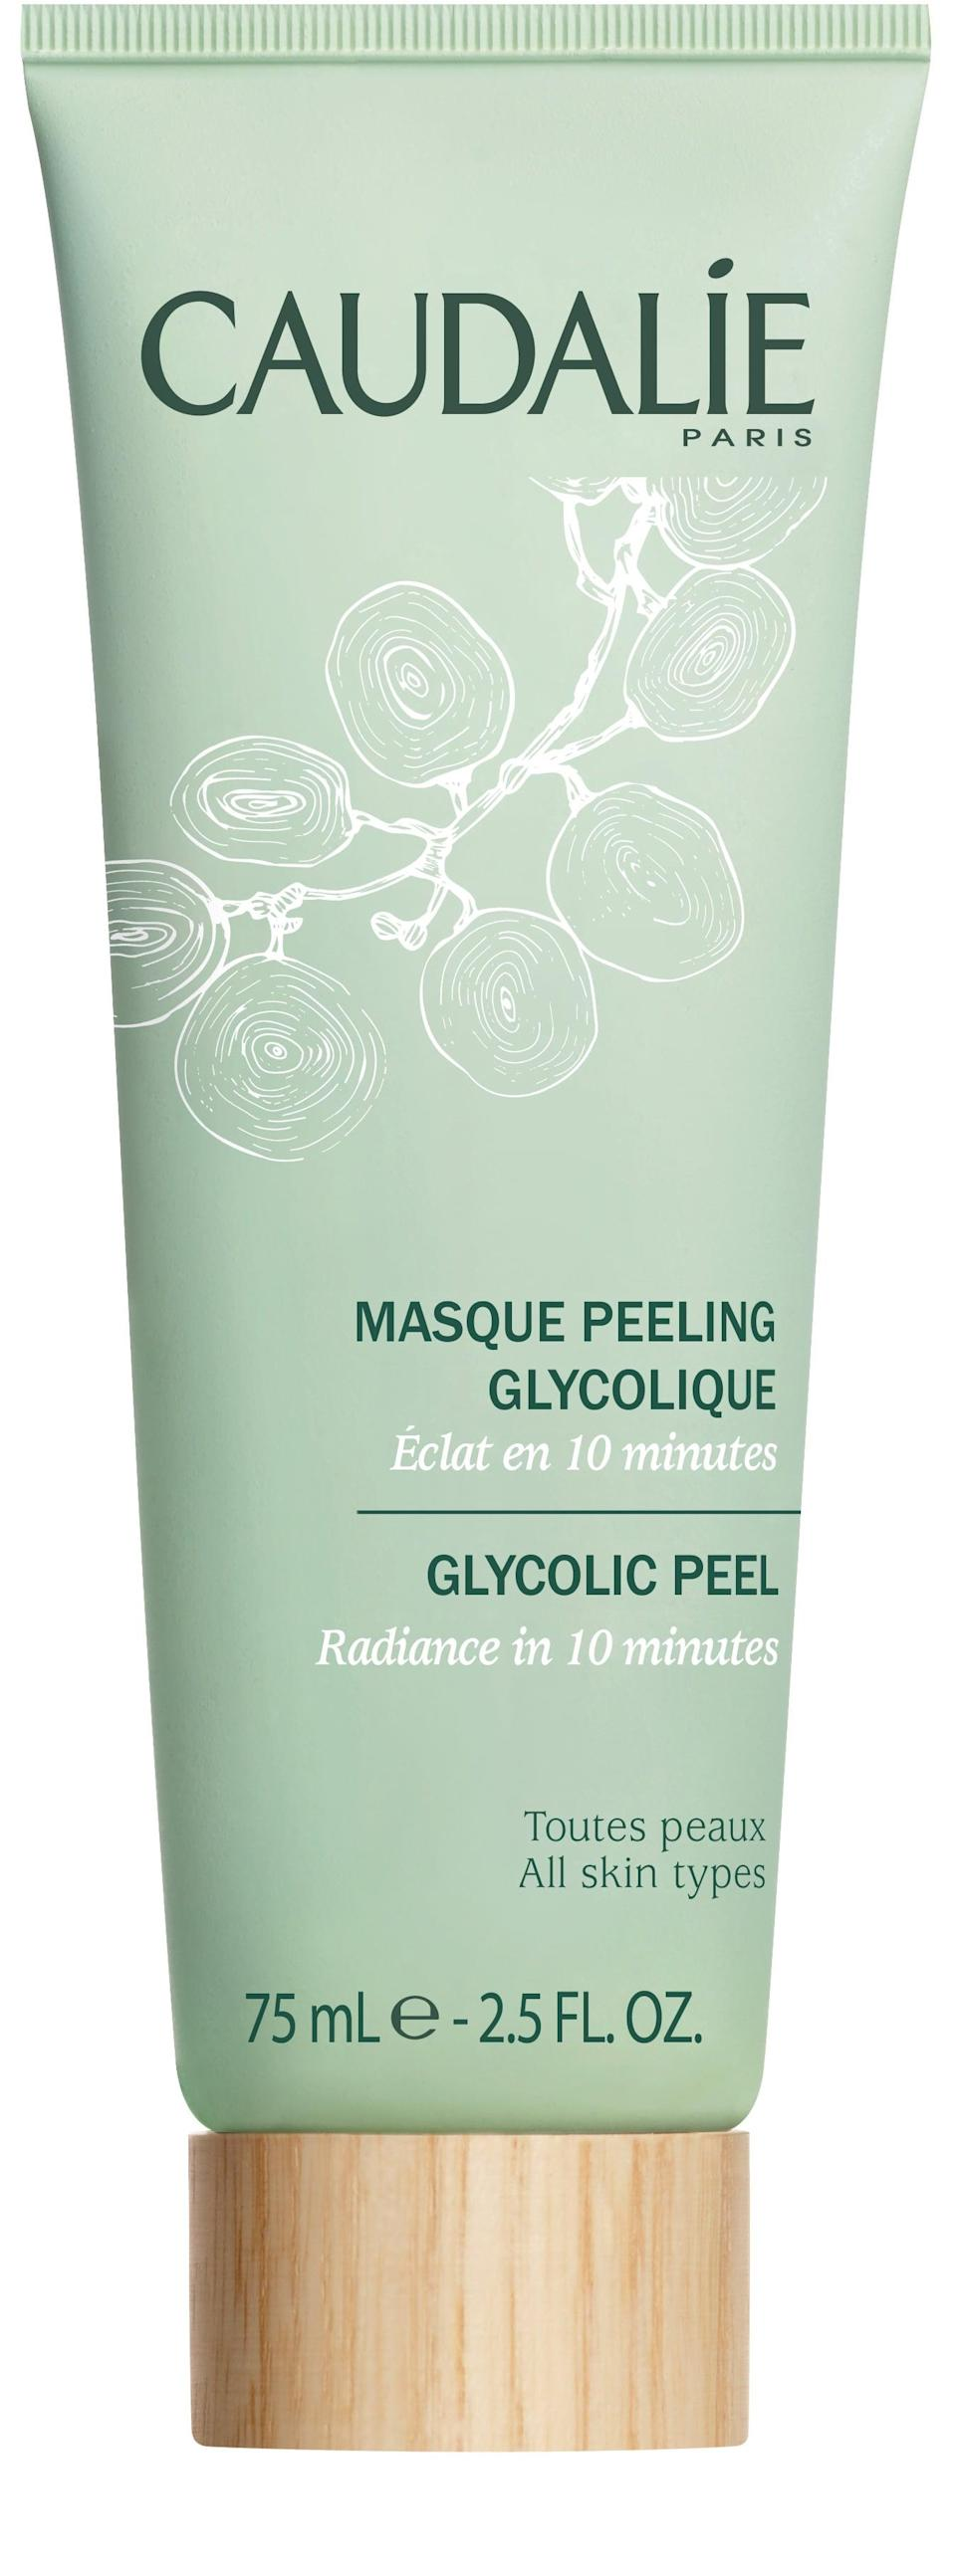 <p>Most people with sensitive skin tend to avoid glycolic acid. However, used in the right formula and alongside the right mix of ingredients, it can actually be a real savior to help strengthen the protective skin barrier over time. Formulated with over 85 percent natural origin ingredients, the <span>Caudalie Glycolic Peel</span> ($39) is a good entry point. It works as both a scrub or a peel, exfoliating and brightening up dull skin all at once. While it is a very effective 10-minute treatment, it's still super gentle and won't irritate your skin.</p>